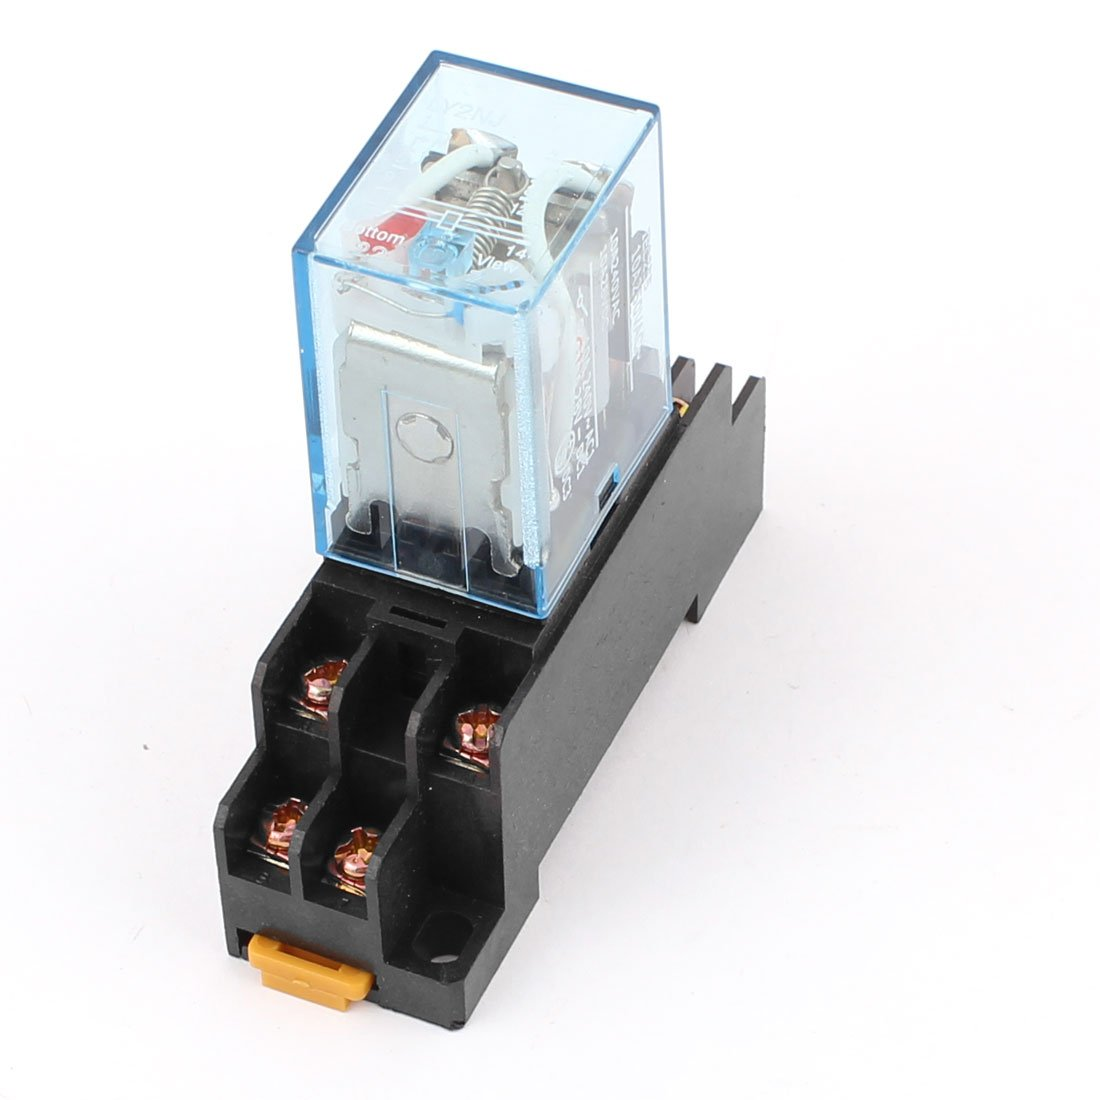 uxcell® AC 110V Coil Power Relay 10A DPDT LY2NJ with PTF08A Socket Base US-SA-AJD-87199